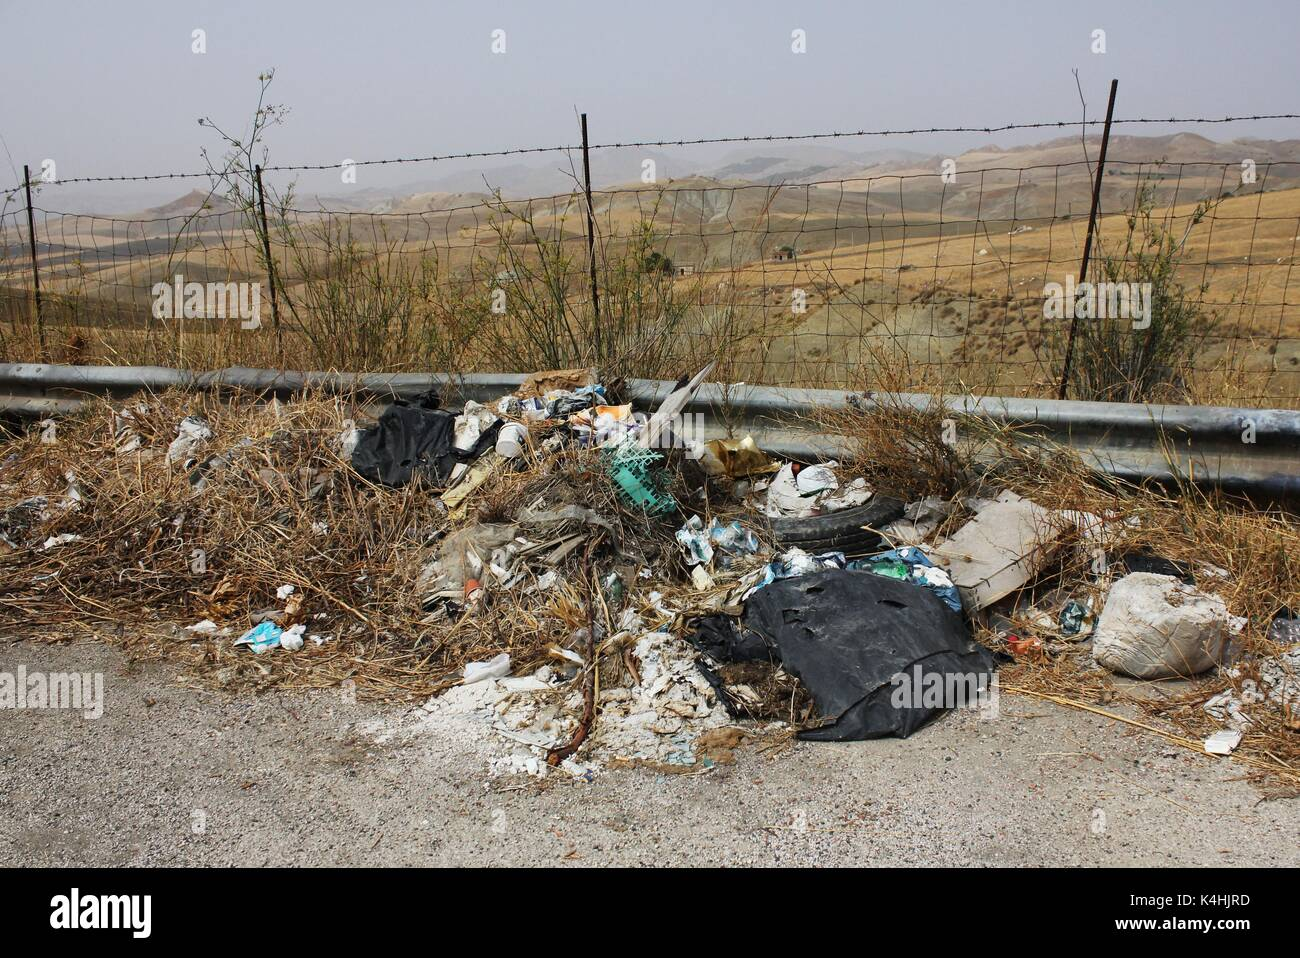 Garbage piled up in a layby near Caltanissetta on the Italian island of Sicily - Stock Image